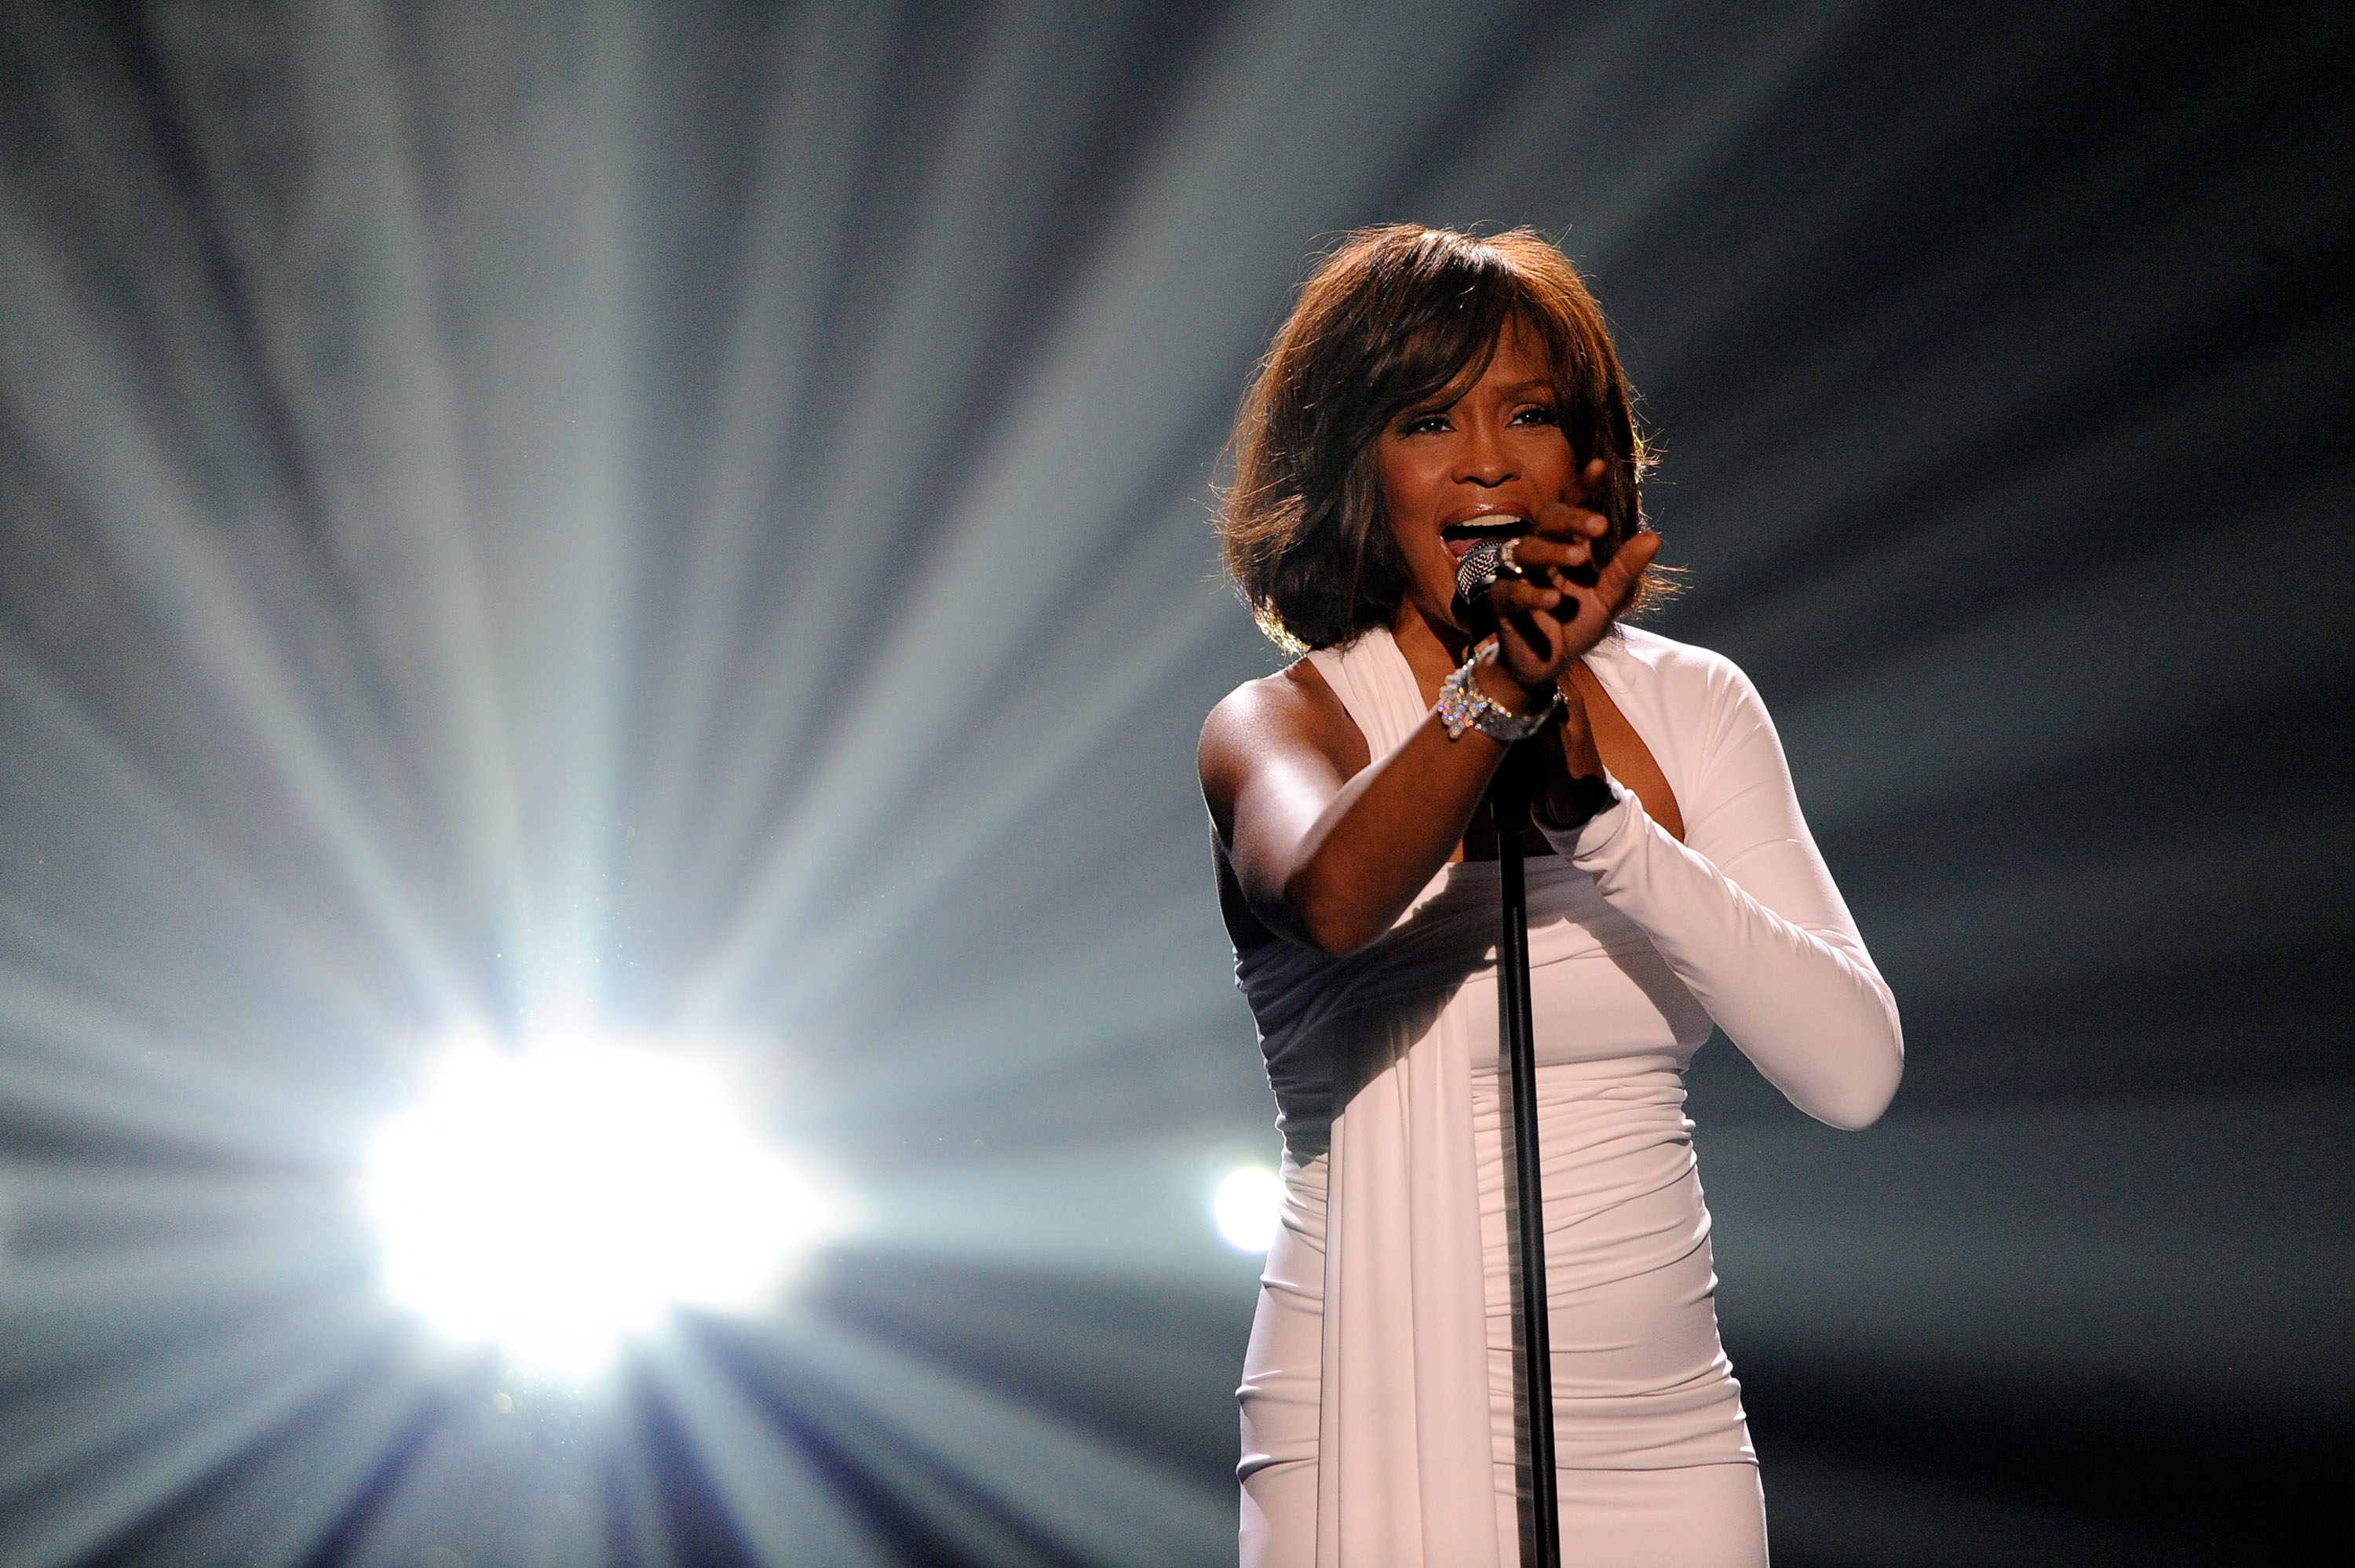 High Resolution Wallpaper | Whitney Houston 3000x1998 px